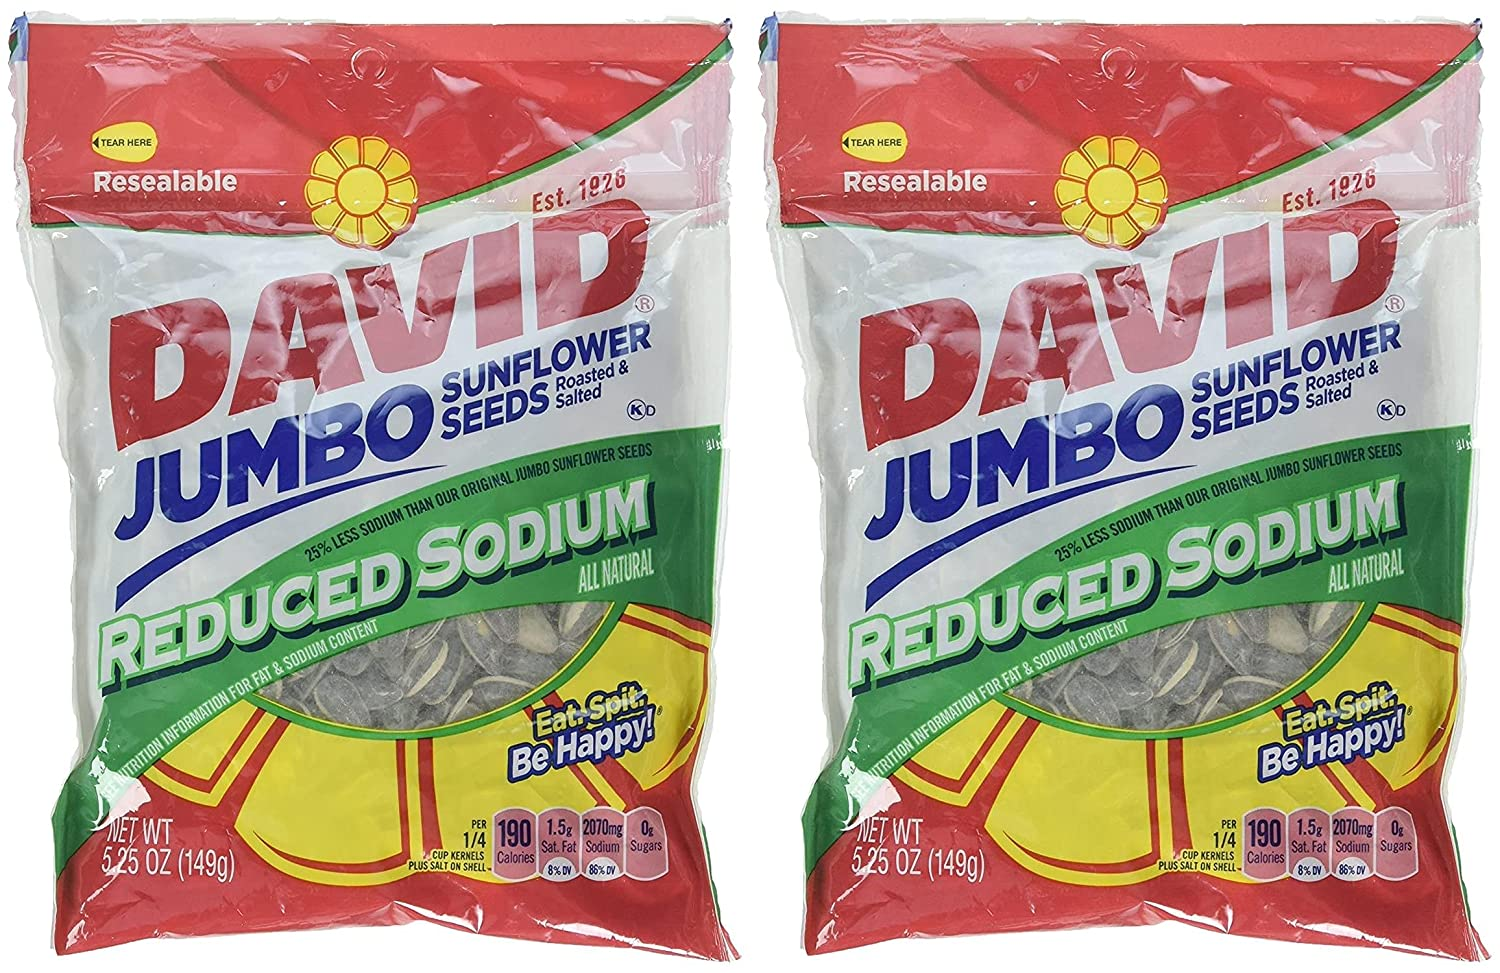 David's Sunflower Max 81% OFF Seeds Reduced Salt oz may Same day shipping va Packaging 5.25